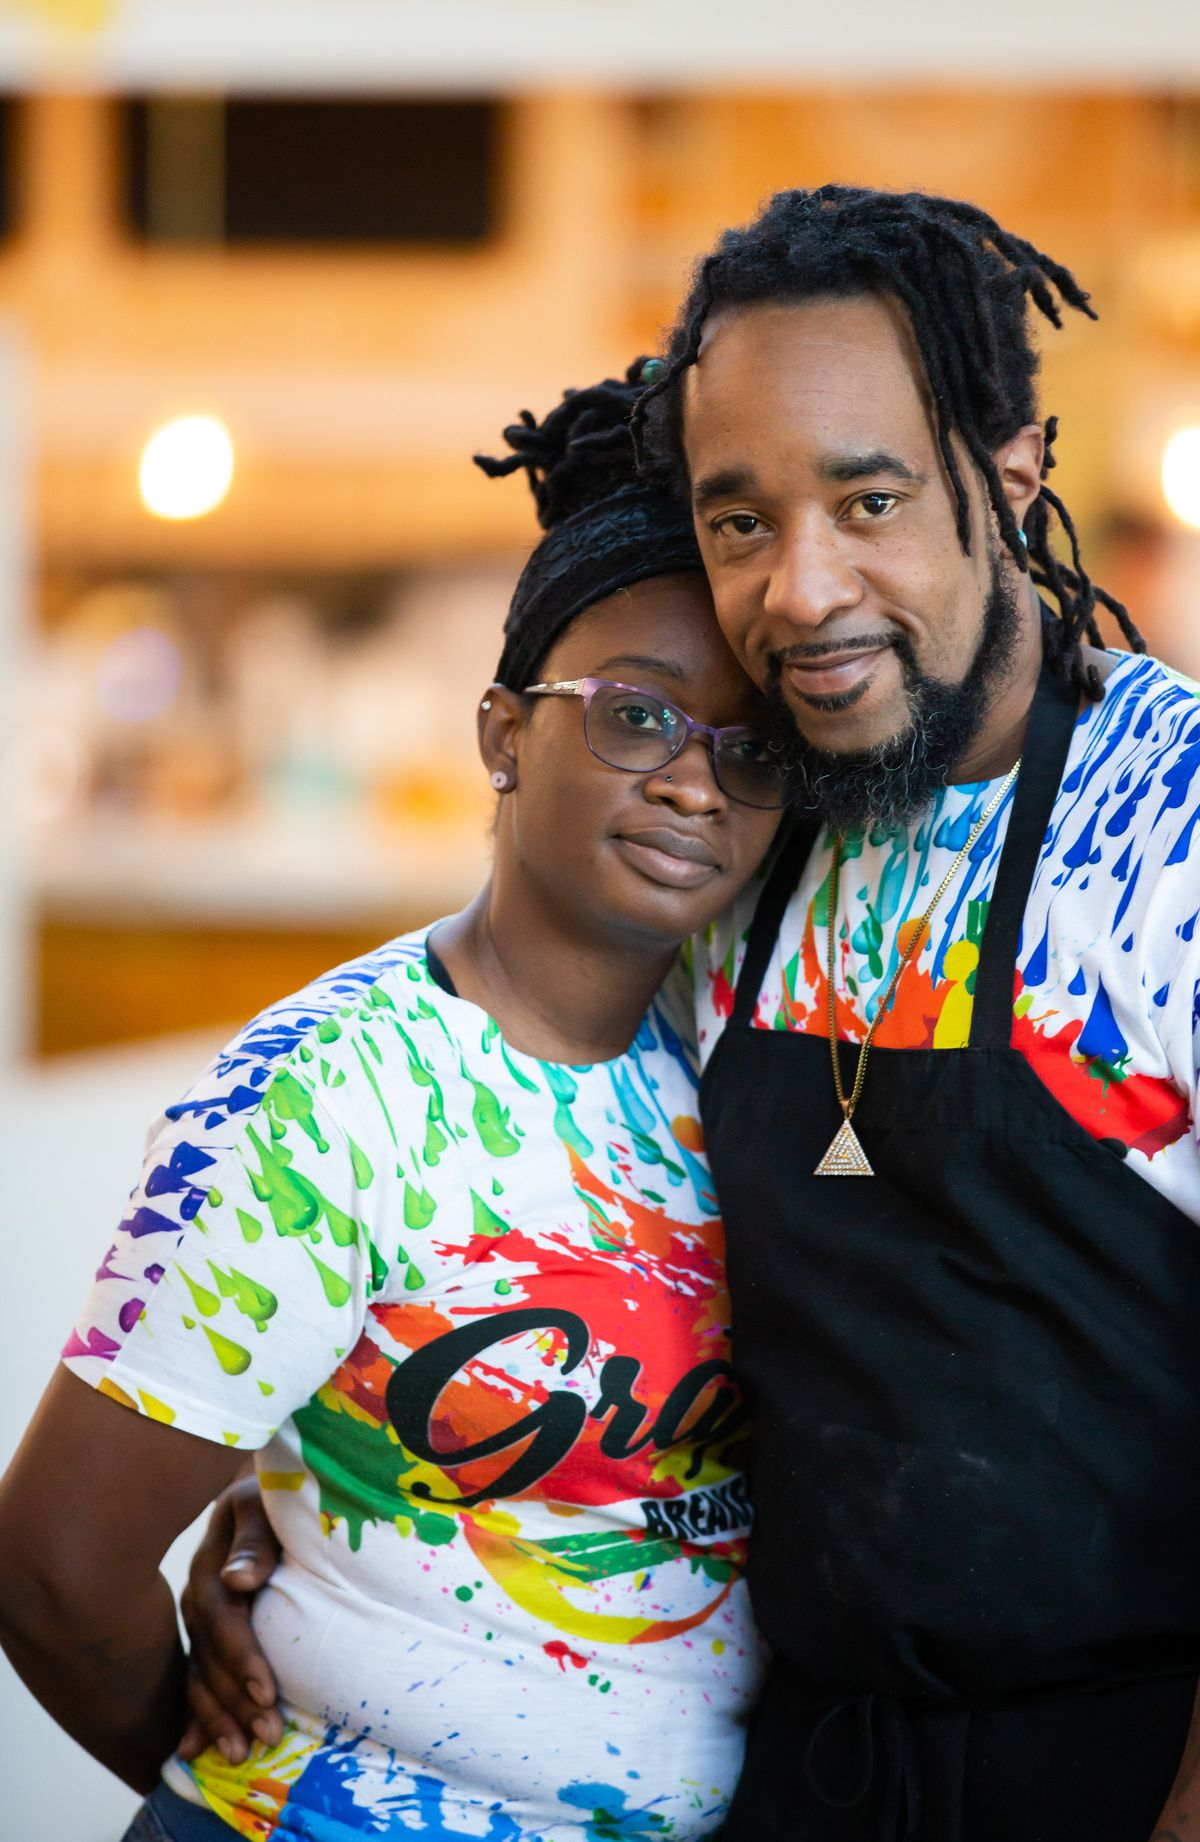 Owners Tonya Waller and chef Marcus James Waller wearing tie dye Graffiti Breakfast tees and Chef Waller wearing a black apron looking content as they hug one another